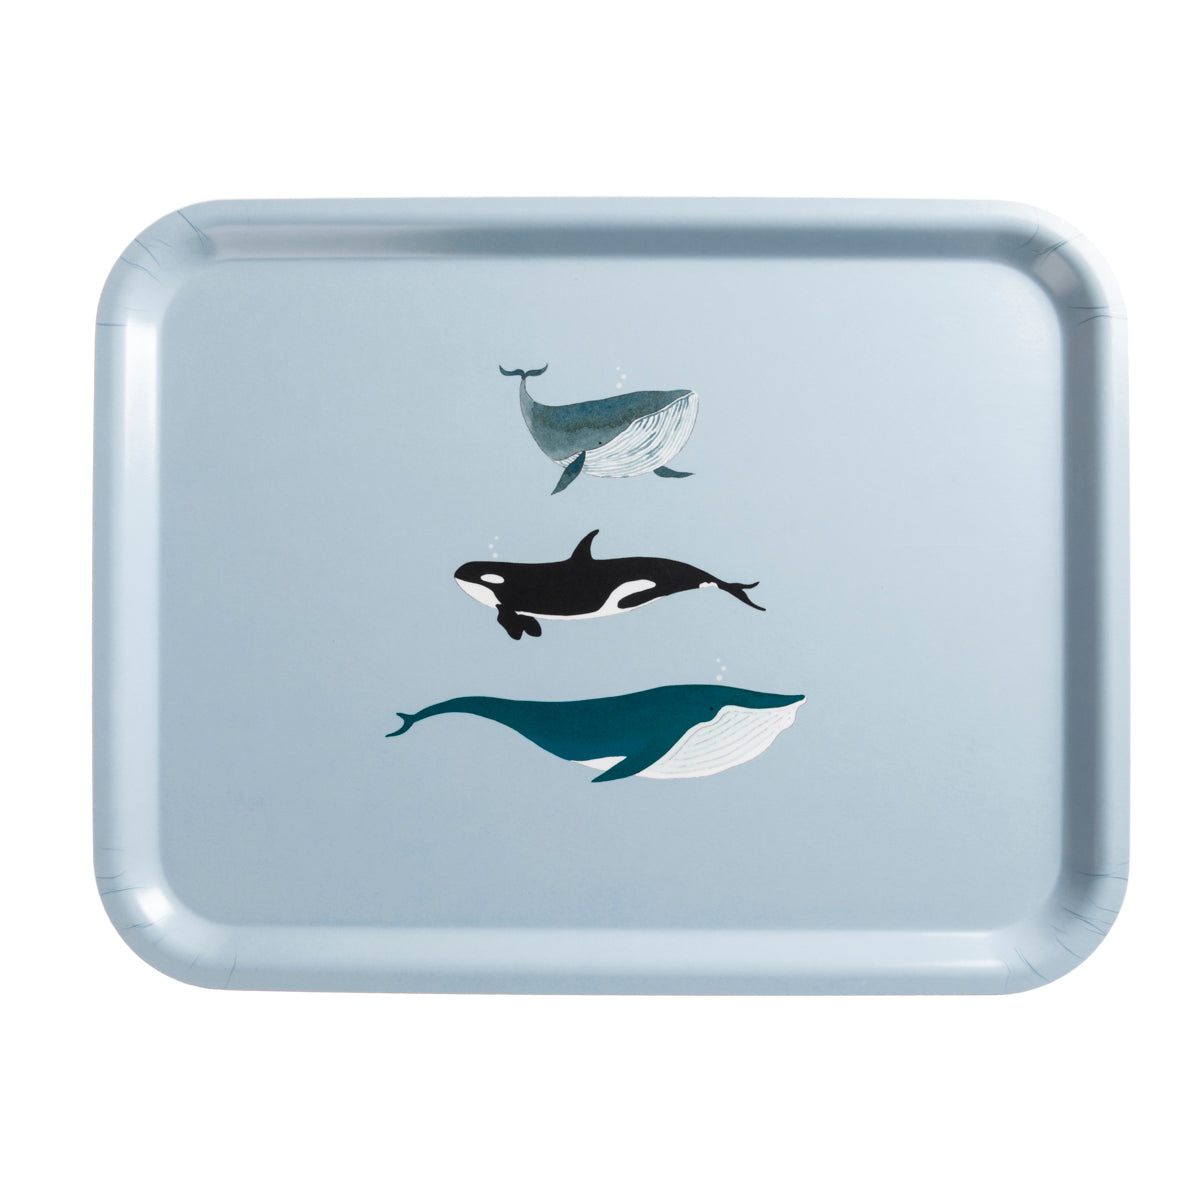 Whales FSC Birchwood Printed Tray by Sophie Allport